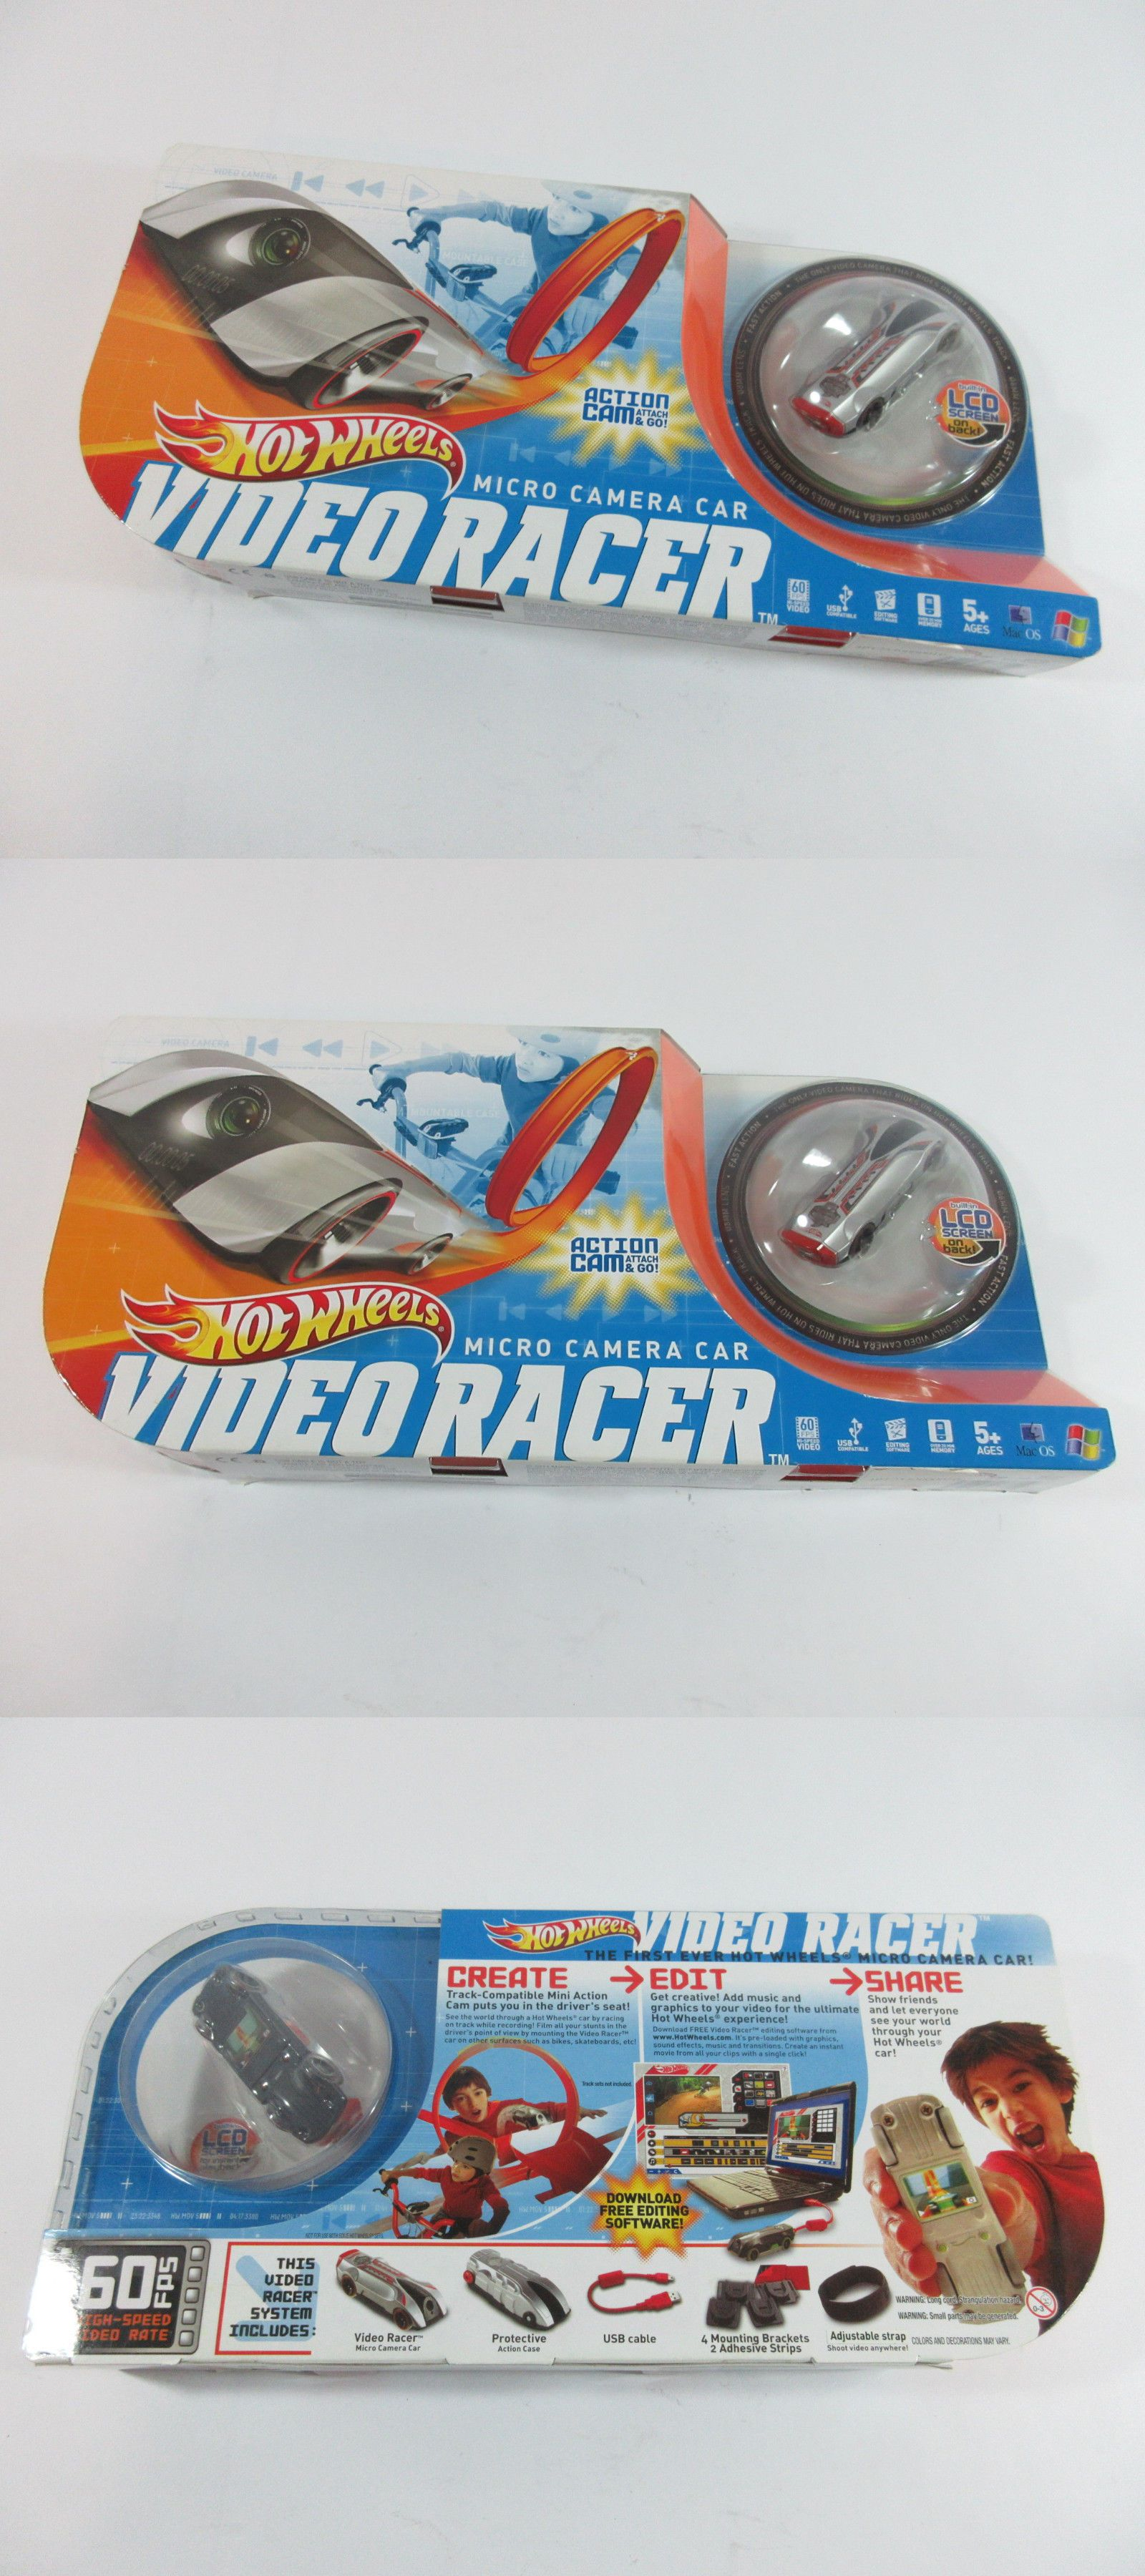 Car toys logo  Hot Wheels Video Racer Micro Camera Car w LCD Screen Silver Red NEW